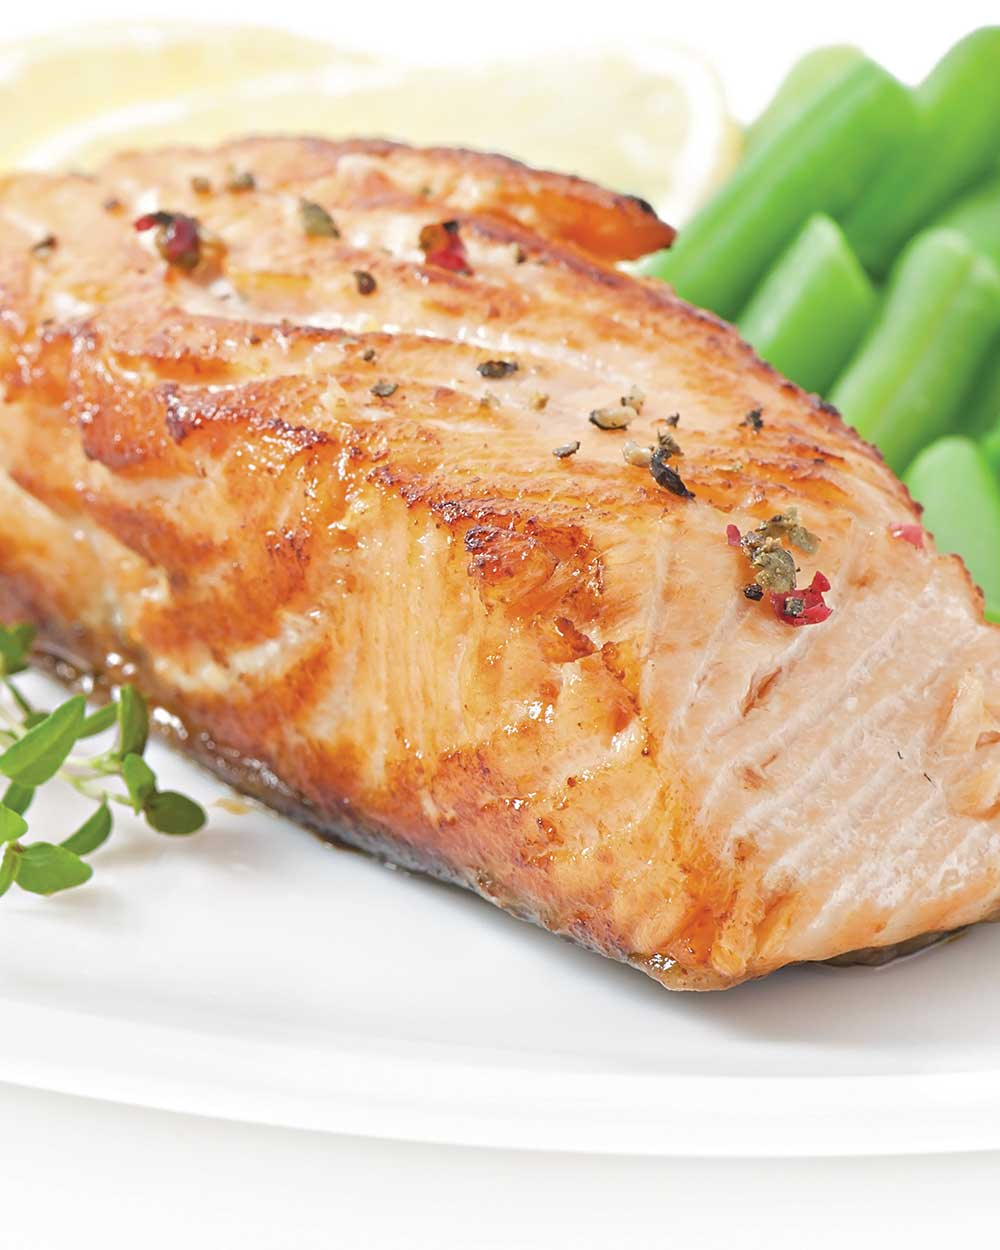 Broiled Salmon with Lemon and Rosemary